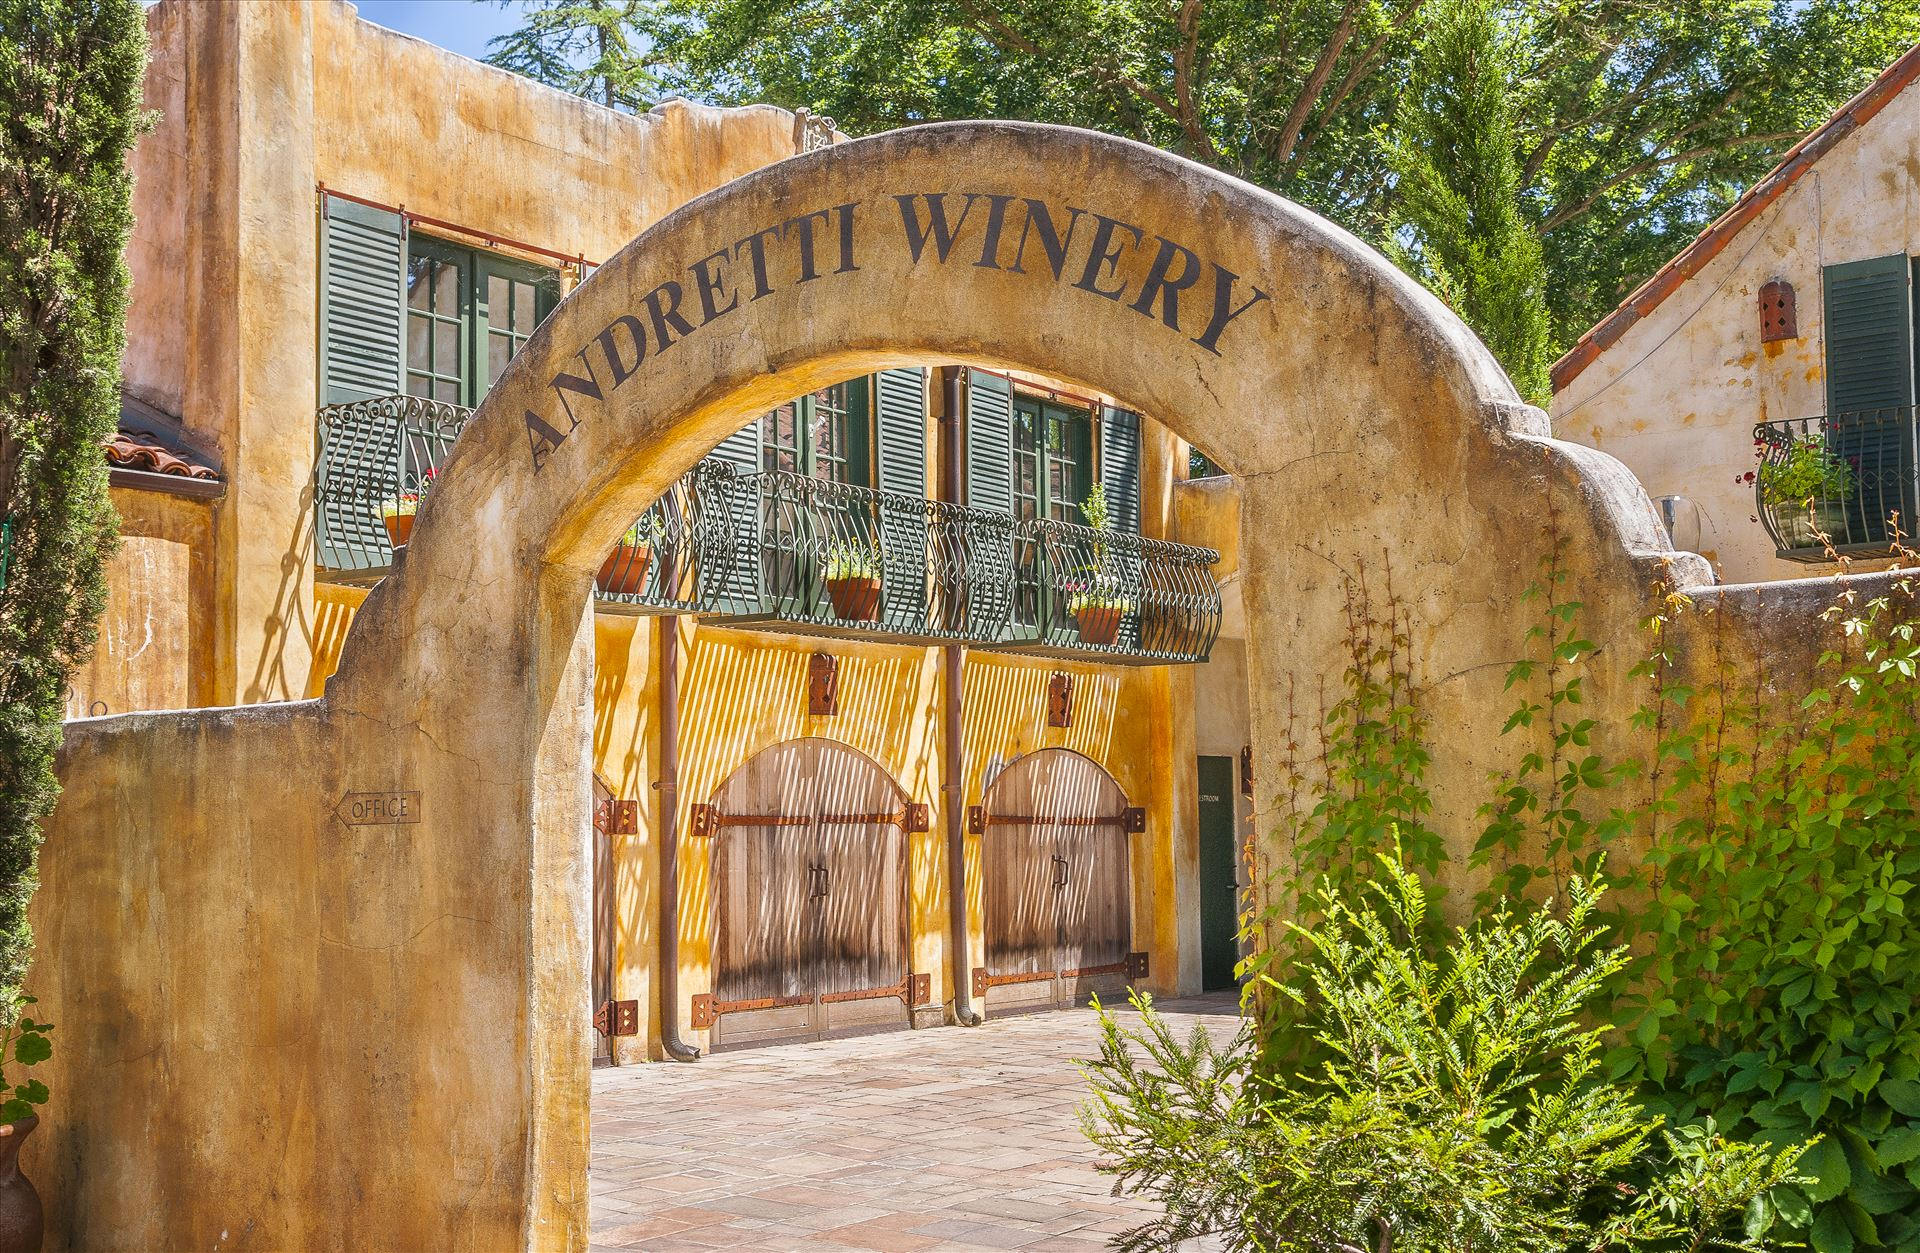 Andretti Winery - Race Team Owner and Driver, Mario Andretti's Napa Valley, California Winery by Buckmaster